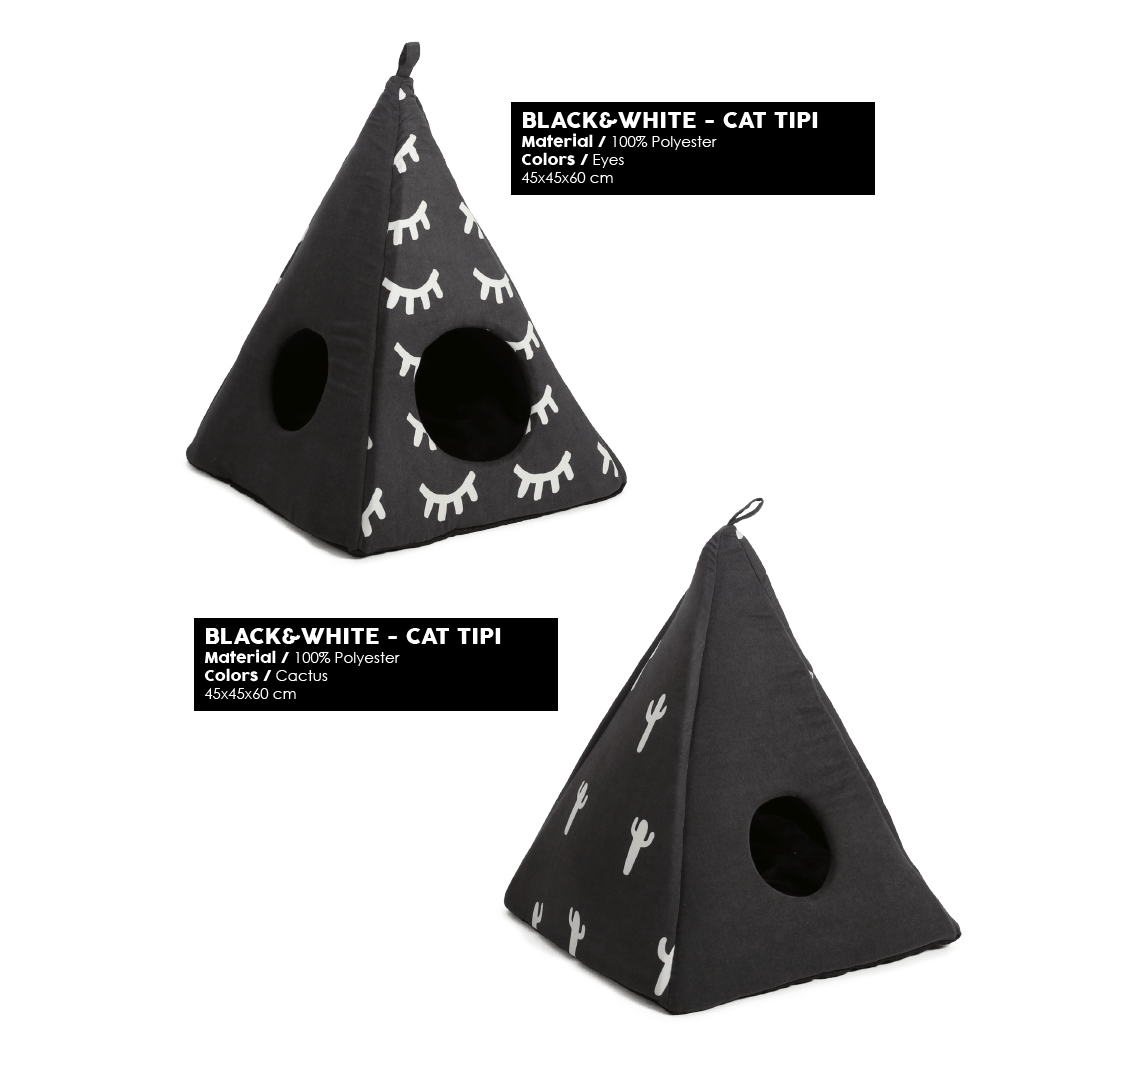 Black & White - Summer 2019 - cattipi